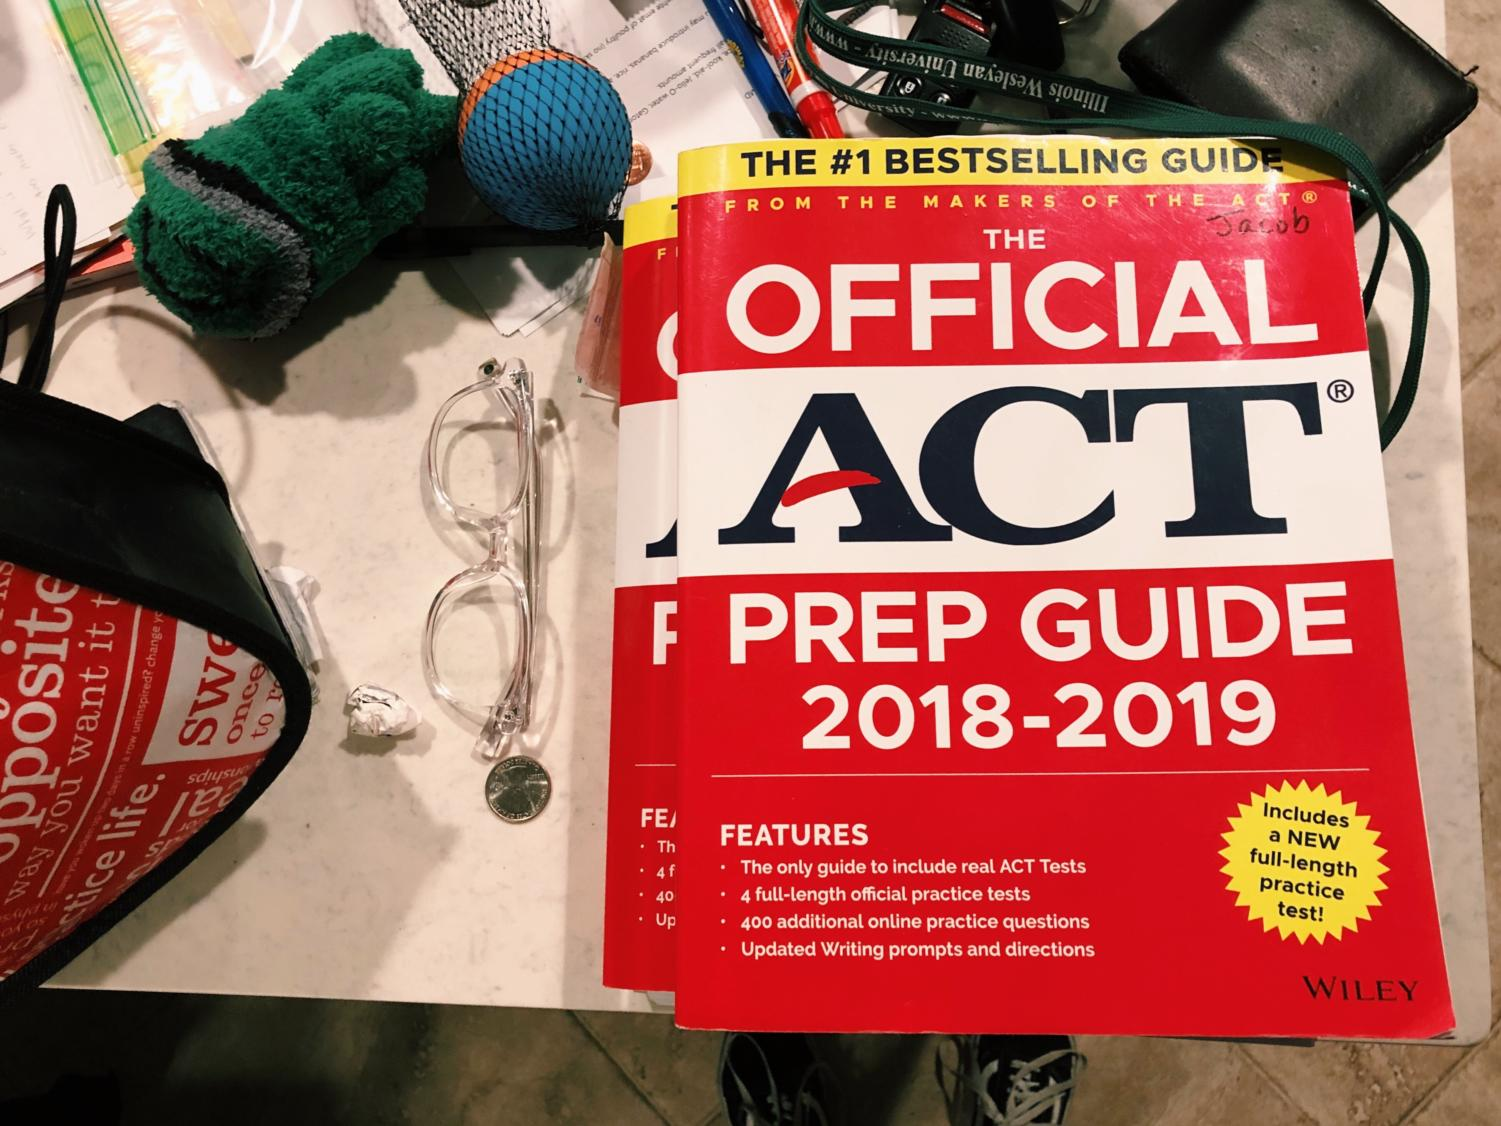 My ACT prep book.  I have never opened it.